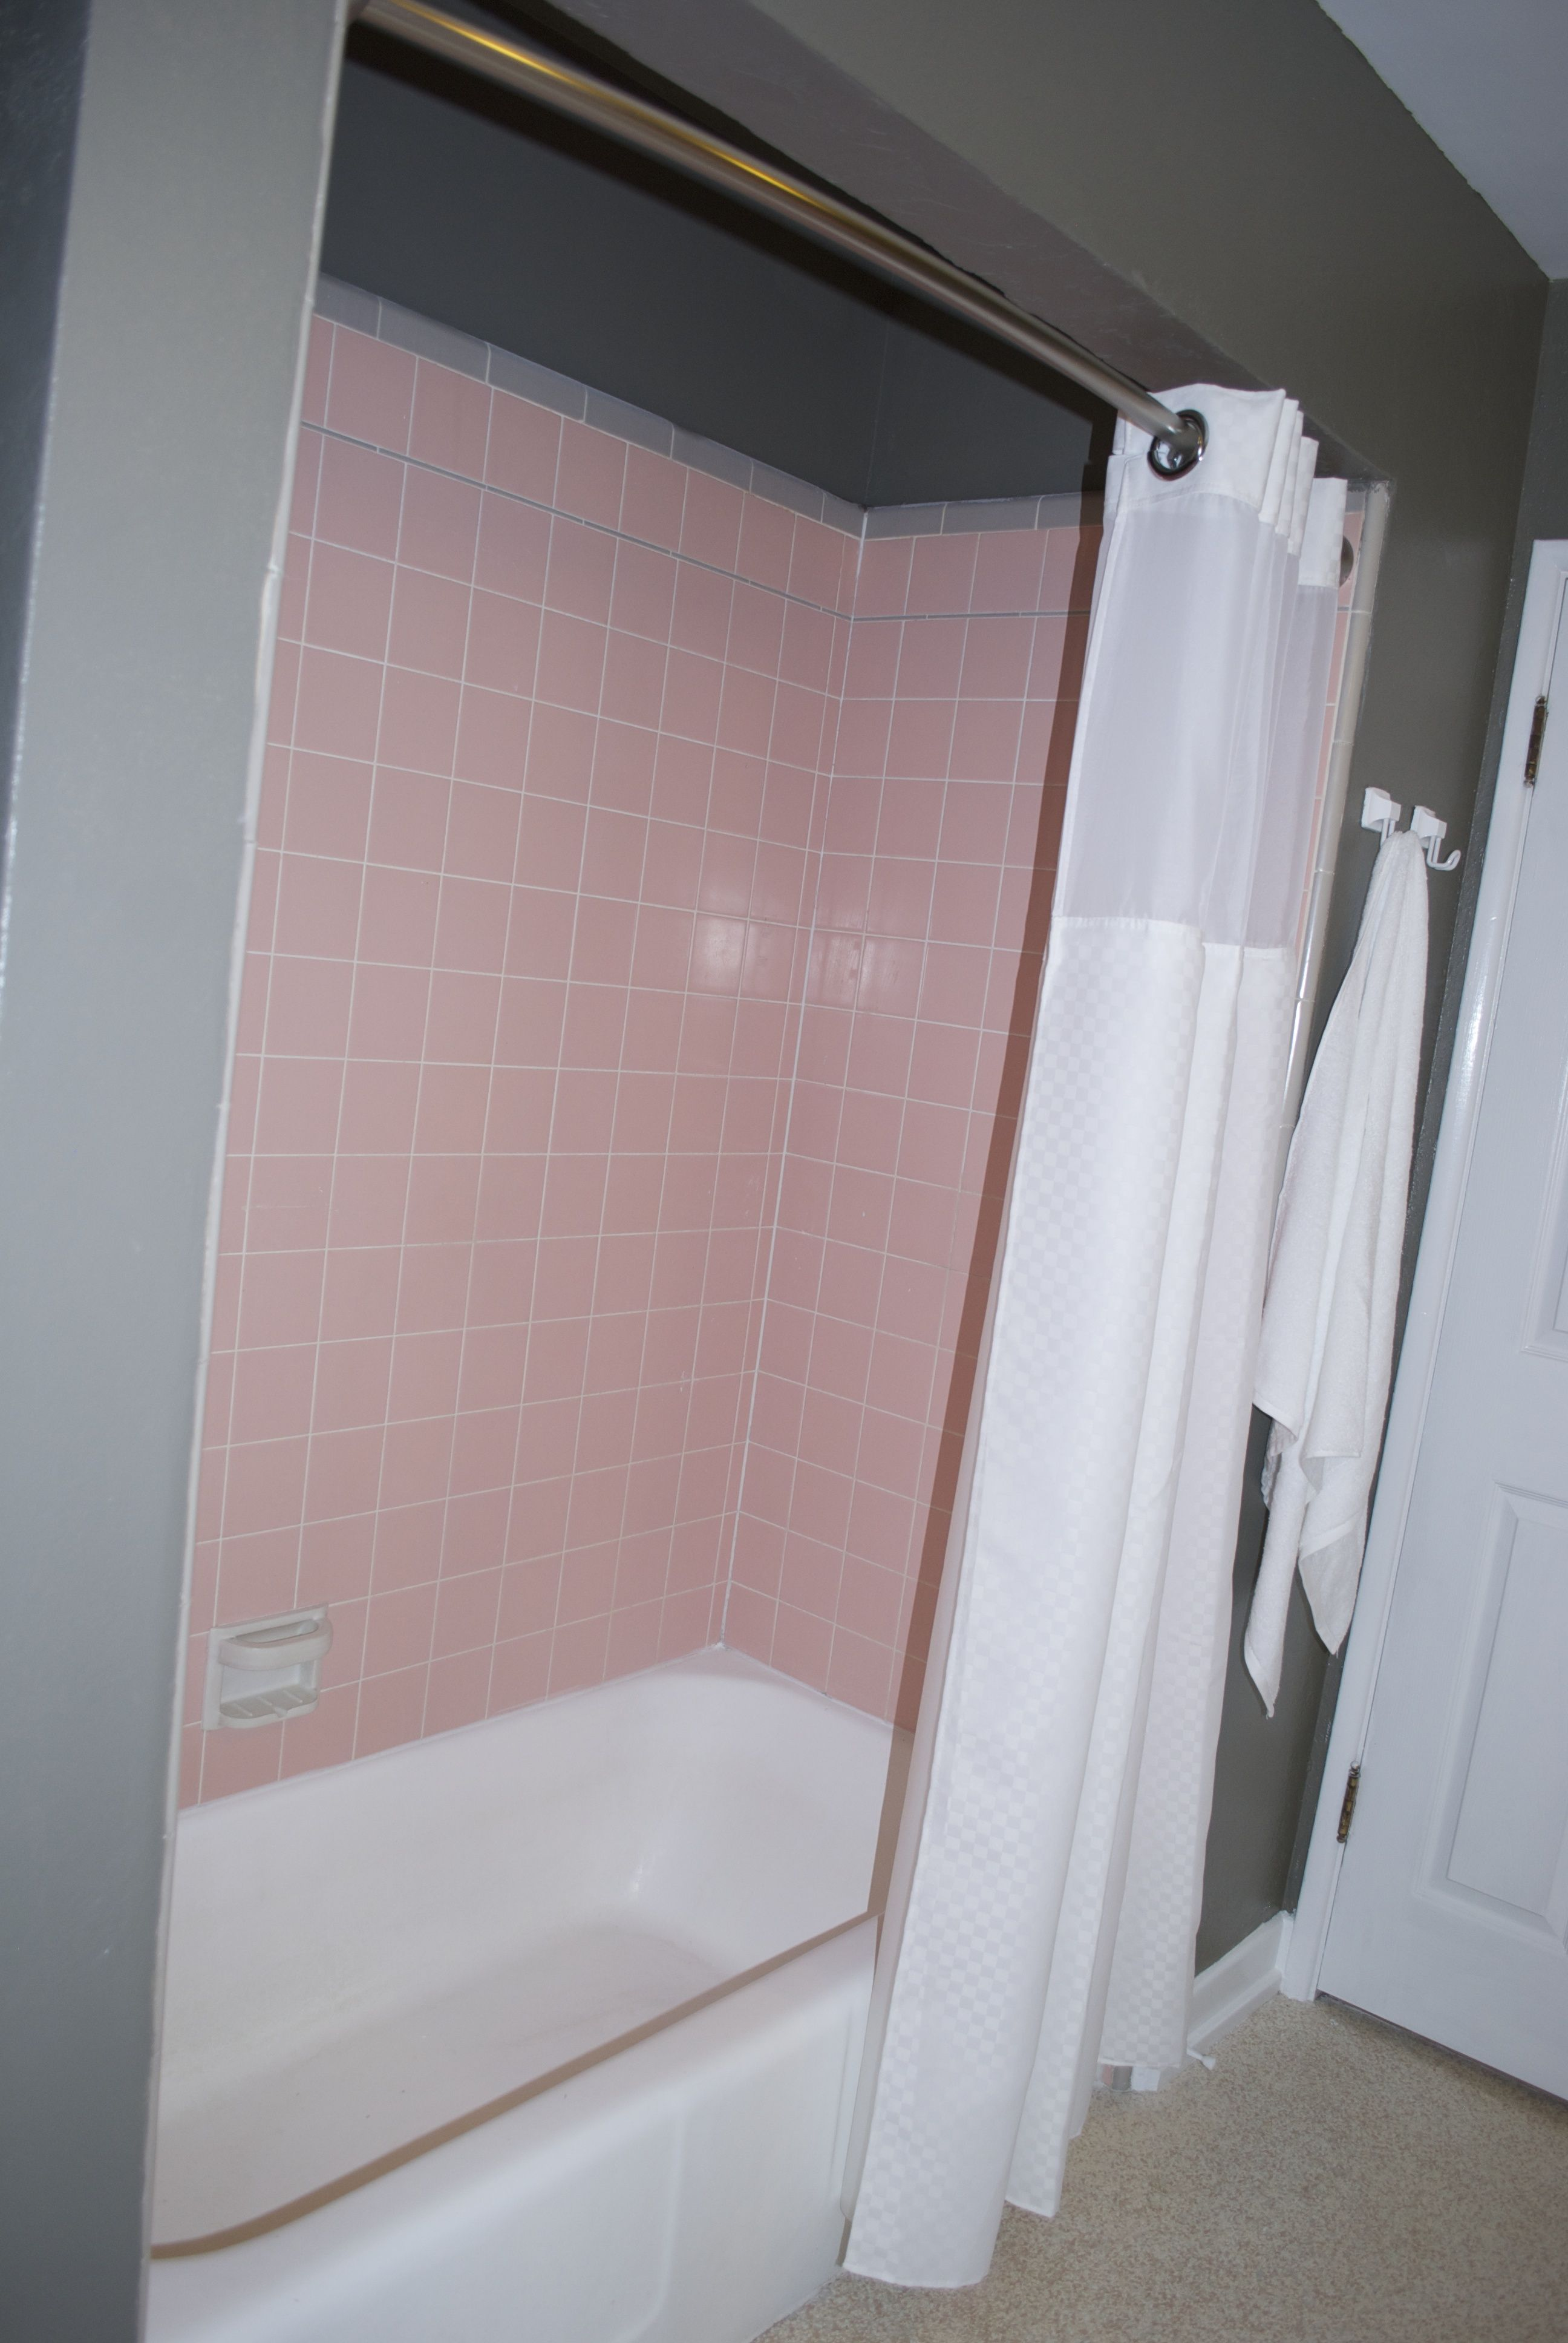 Pin By Gwen Mccrea Peredo On Home Sweet Home Pink Bathroom Tiles Bathroom Paint Colors Pink Tiles